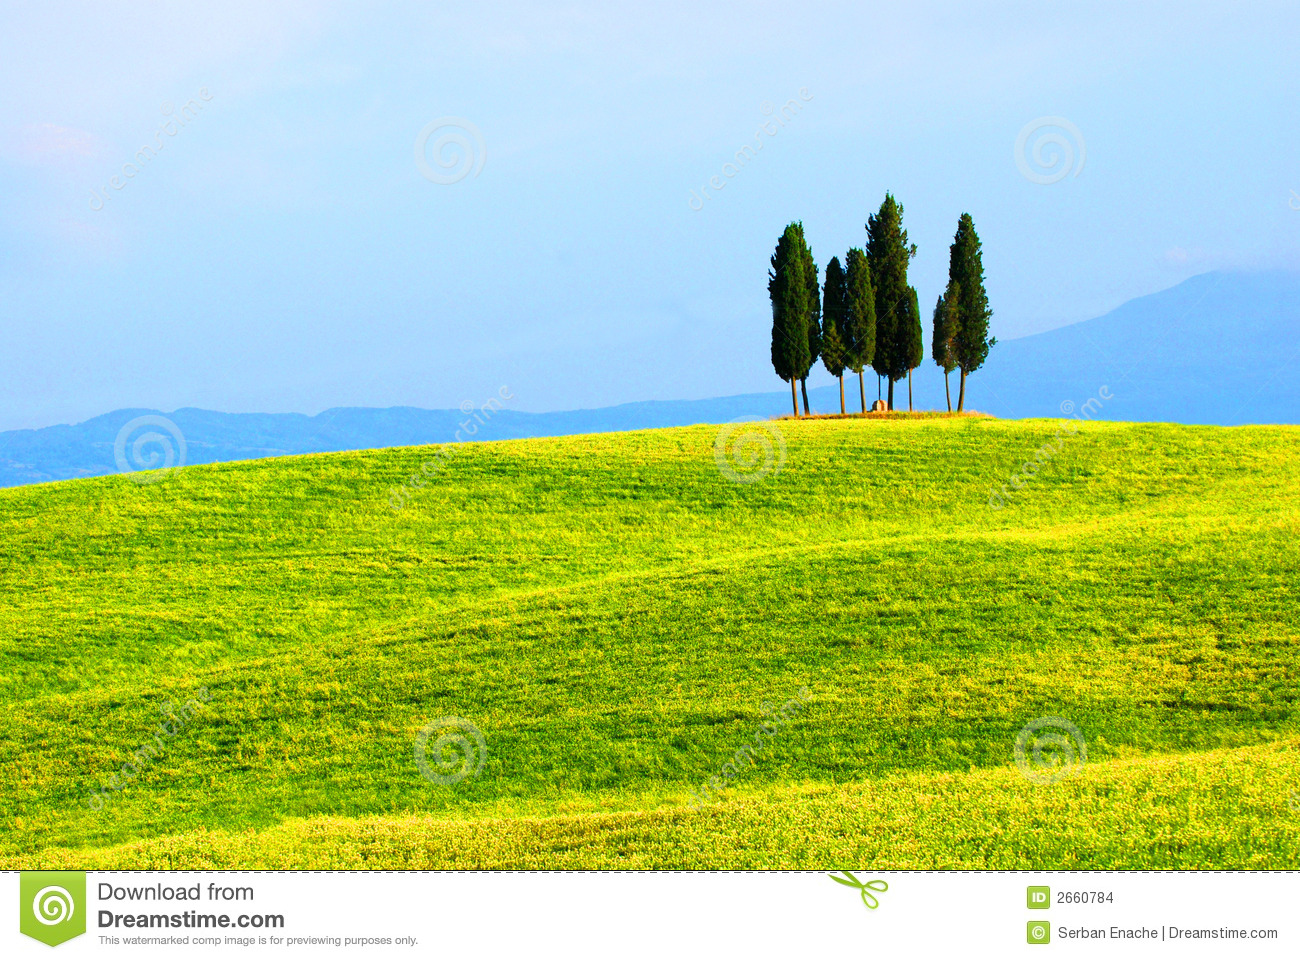 Cypress trees and green fields